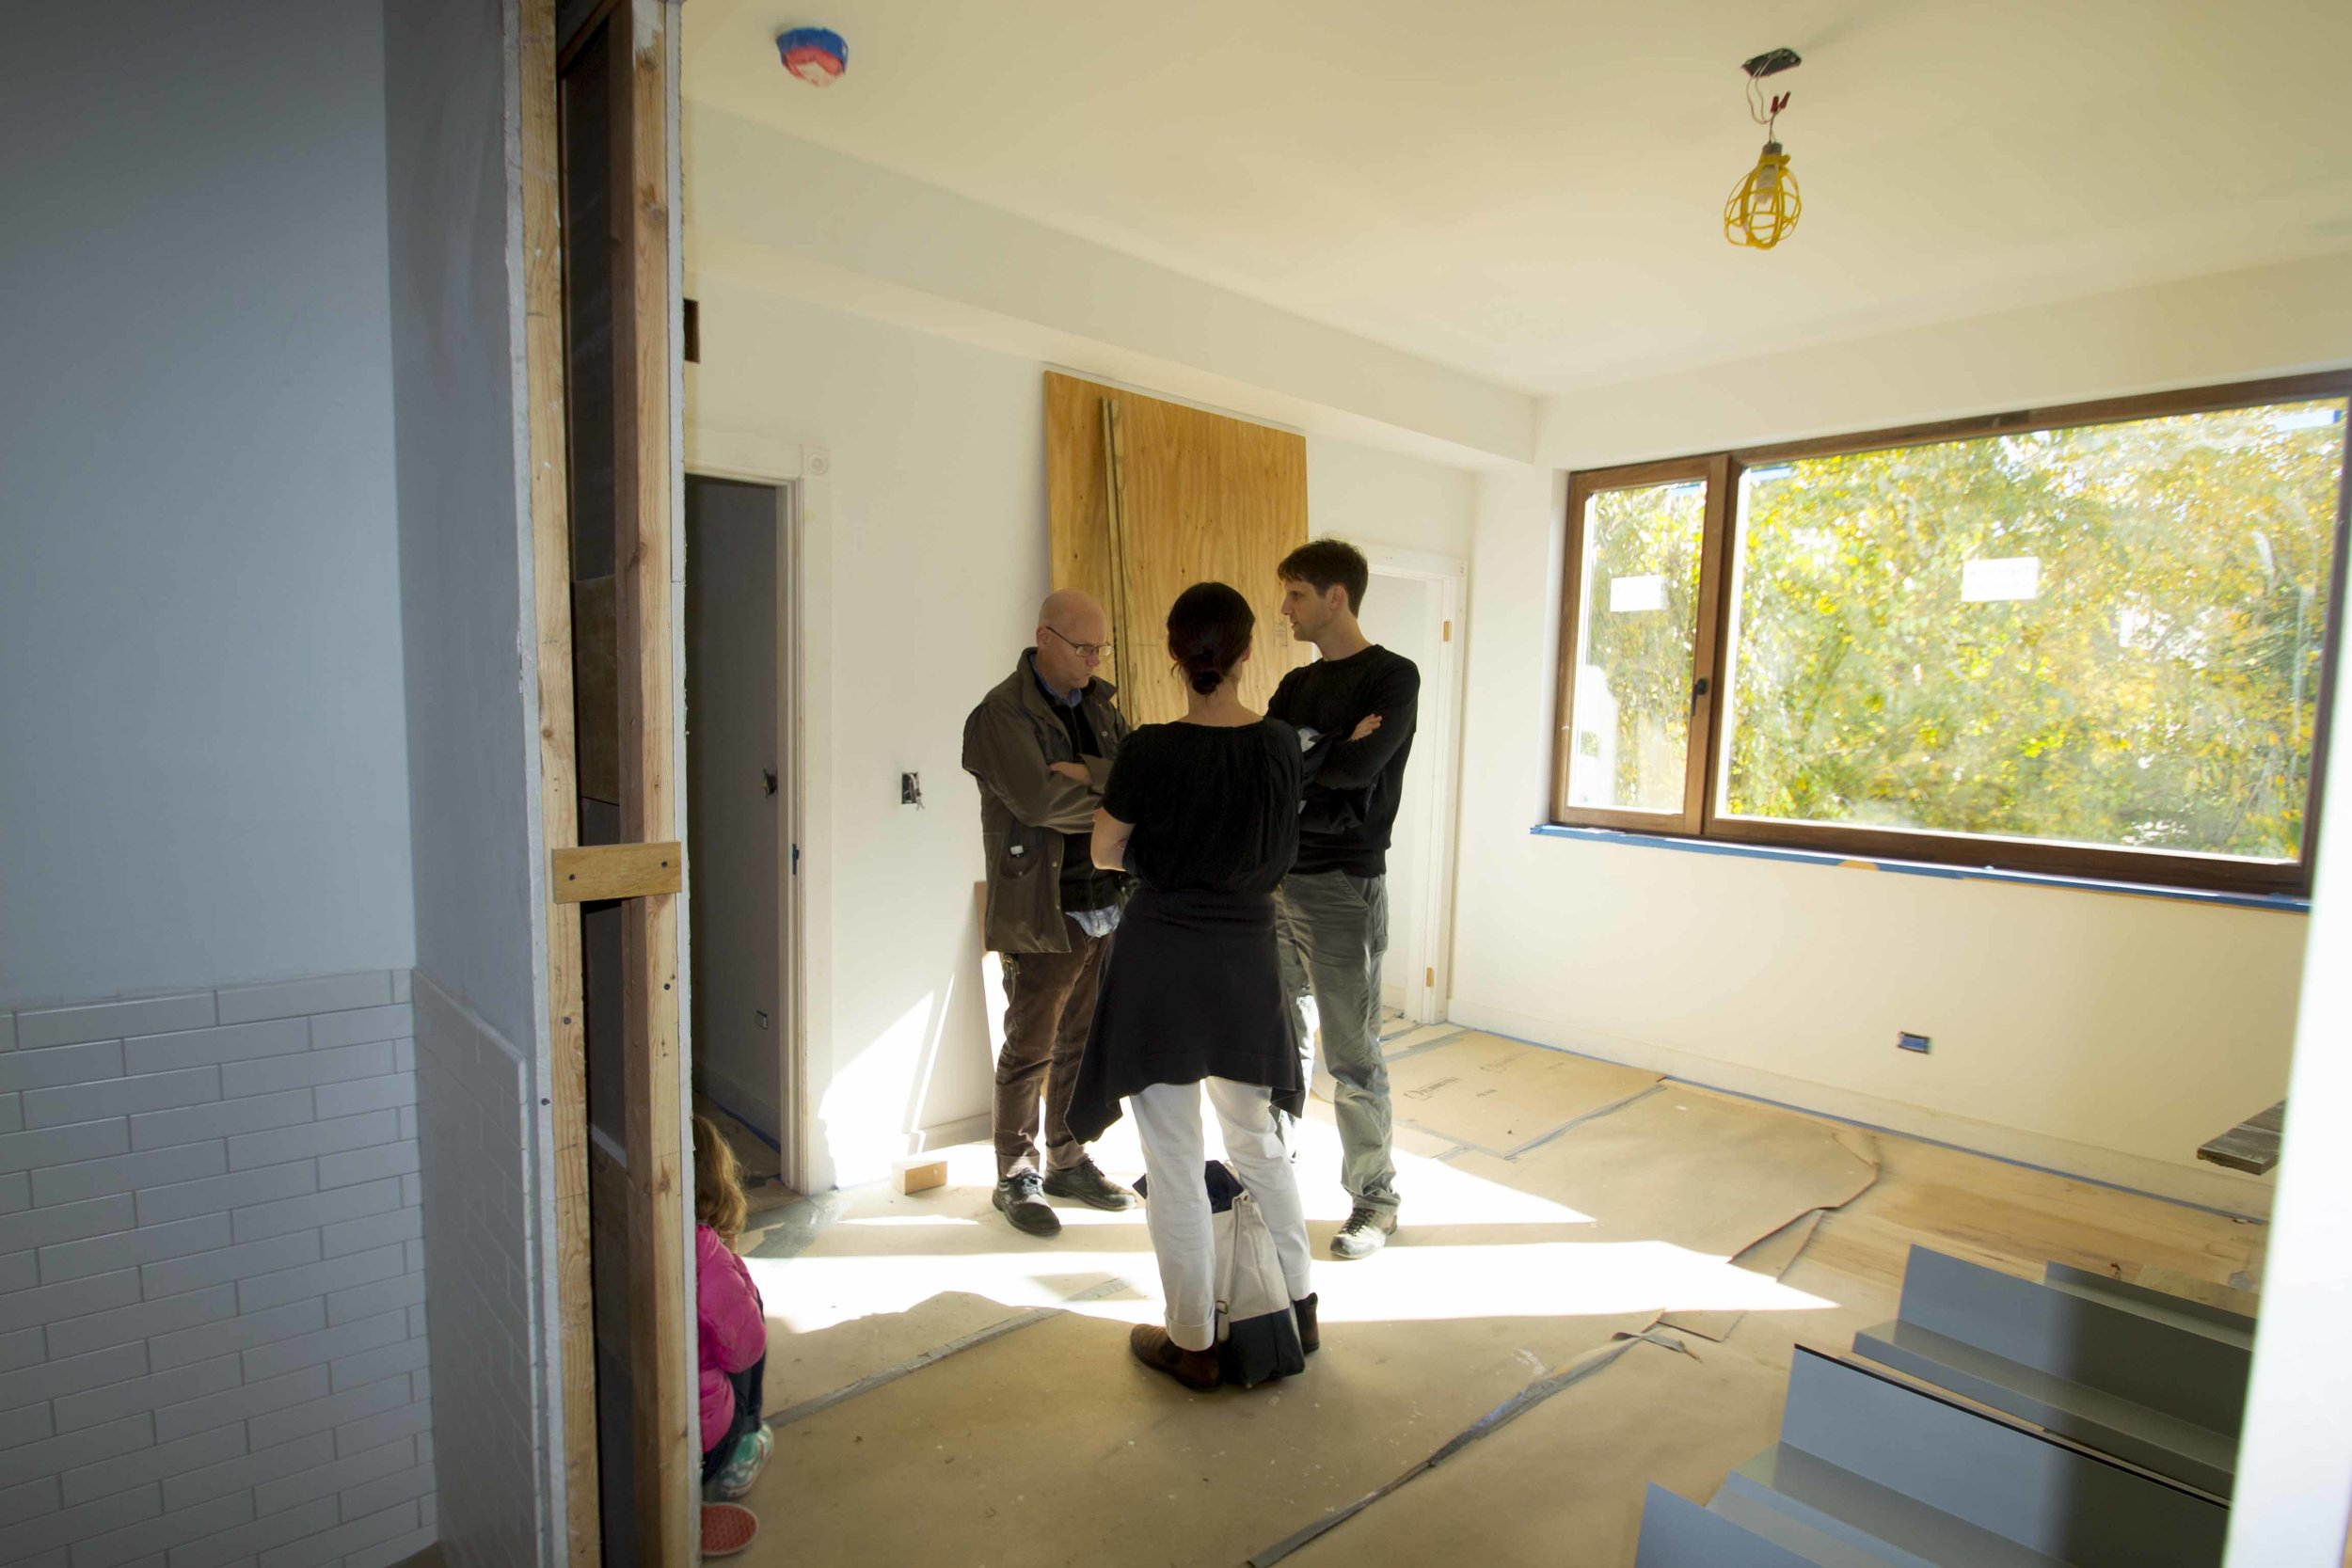 20161111__NY PASSIVE HOUSE DAYS_OPEN HOUSE_PAUL CASTRUCCI ARCHITECT__0024_lowres.jpg